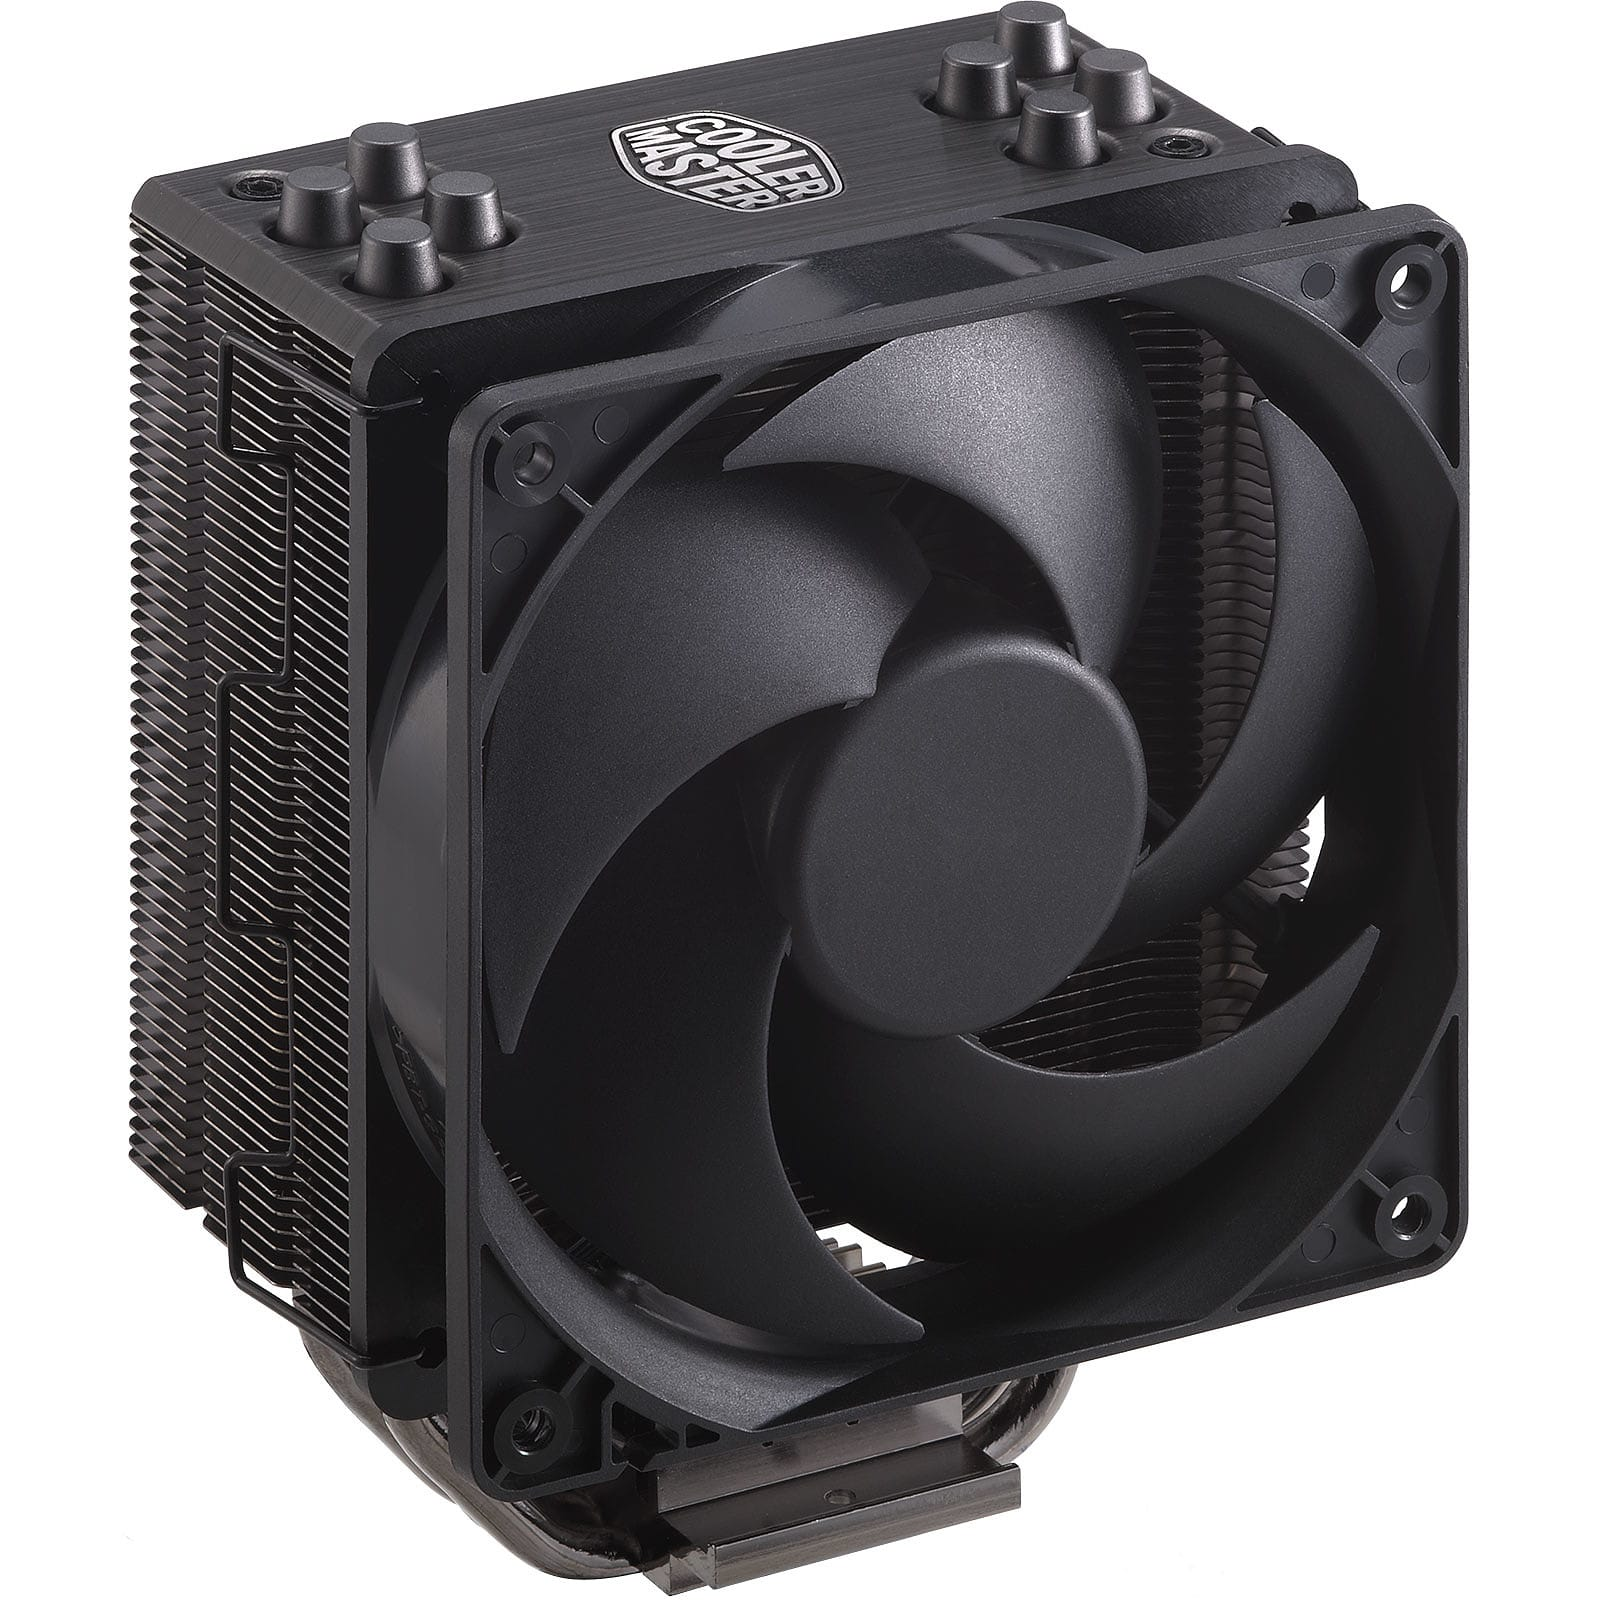 Vnetirad Cooler Master Hyper 212 Black Edition option refroidissement PC Gamer Apex Legends